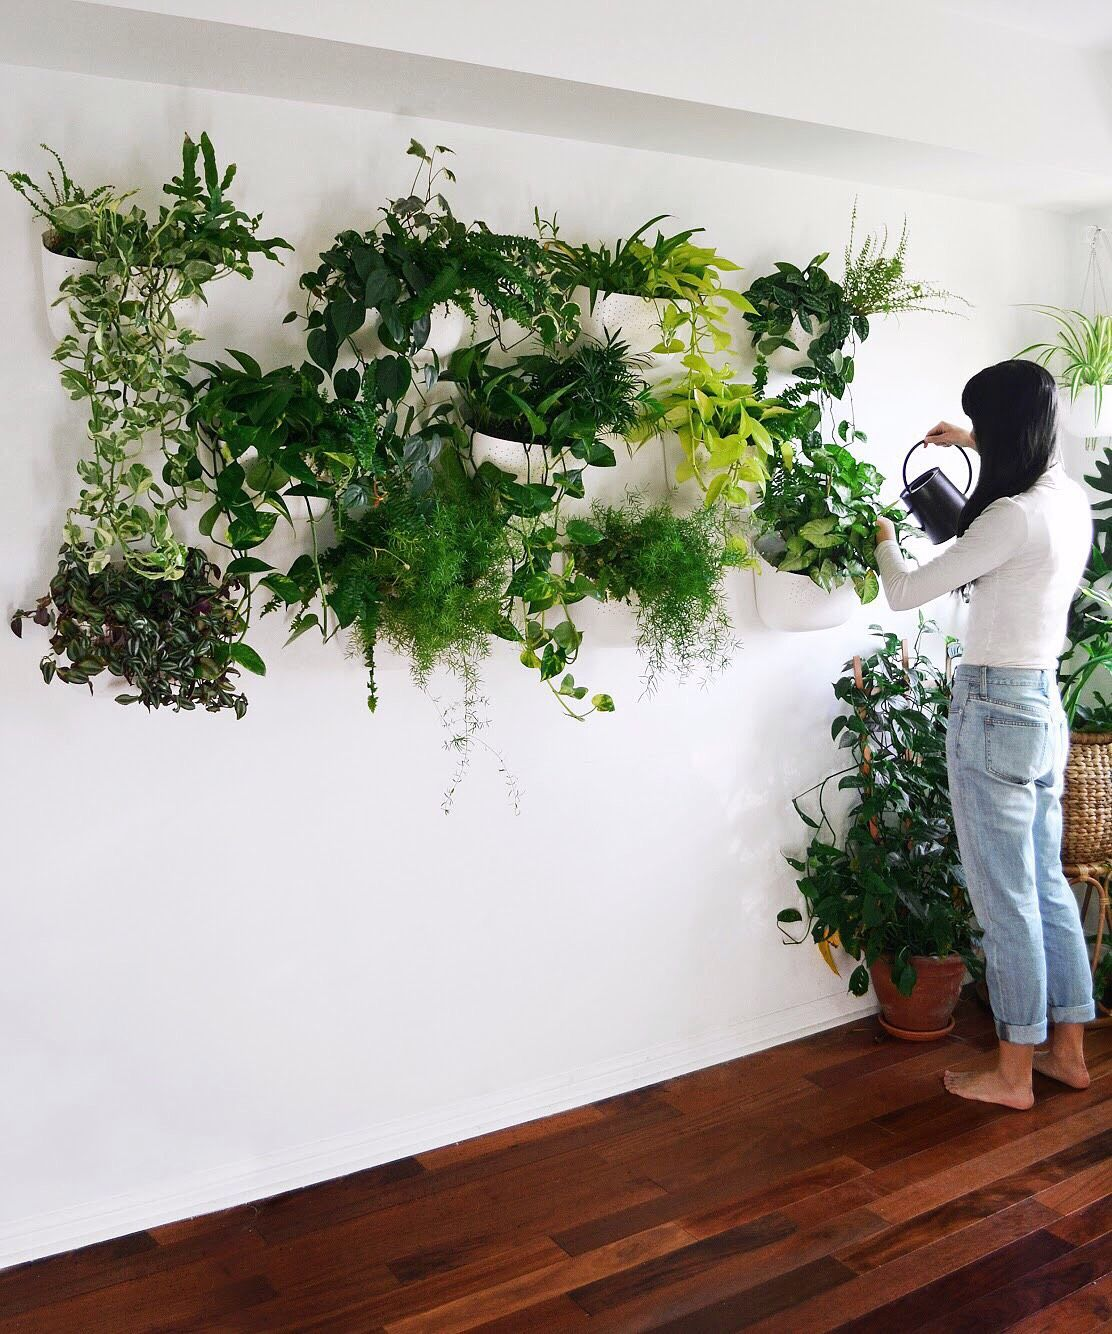 Build A Living Wall With Ease Wally Eco Planters 15 Off Code Studioplants